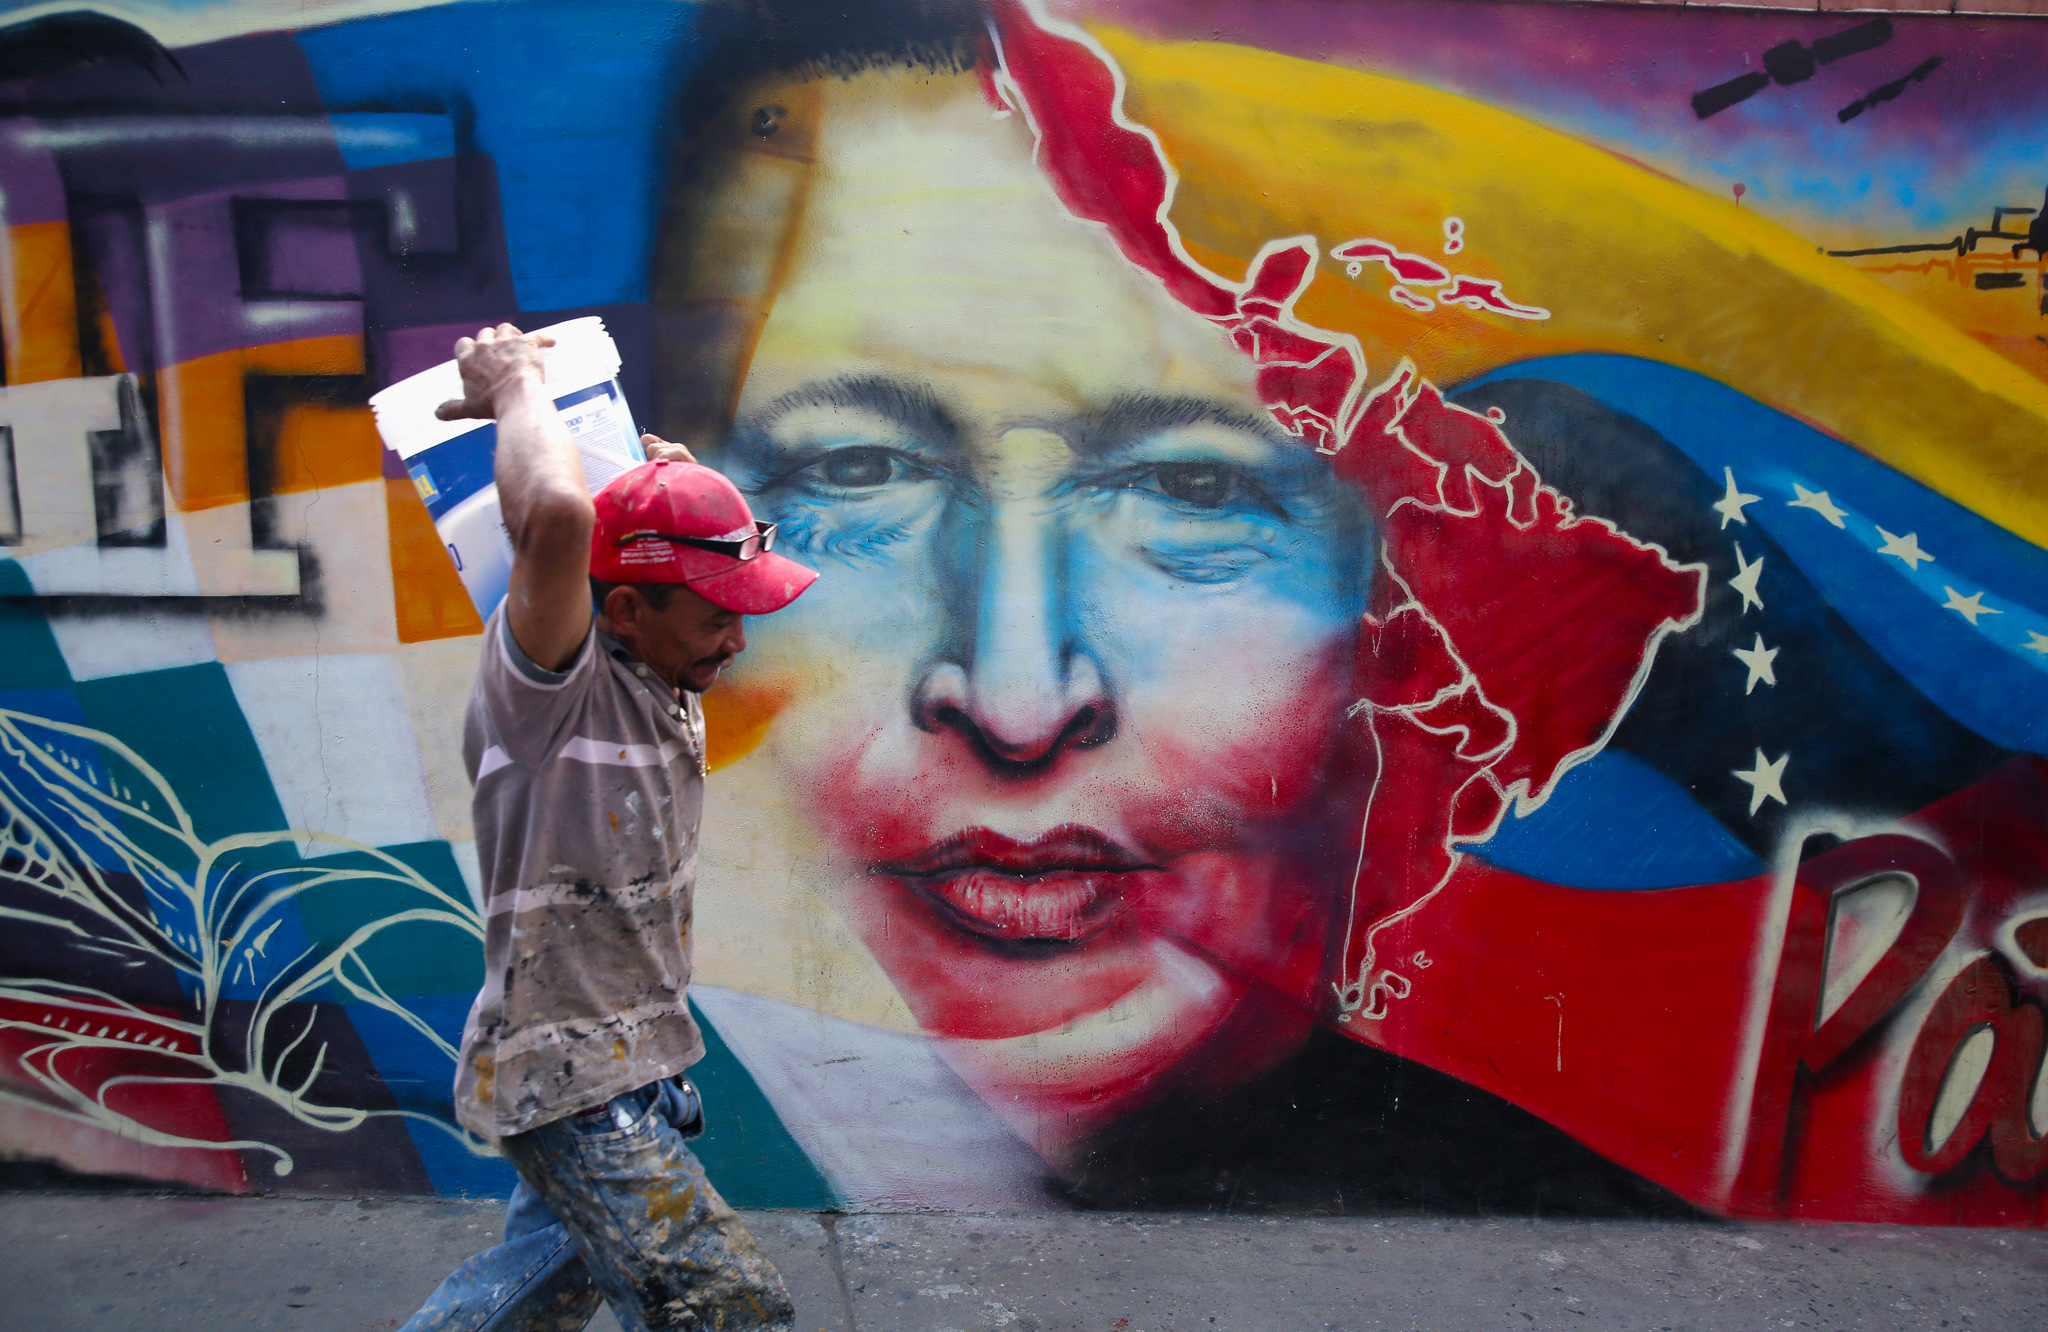 Venezuelans Loyal To Former President Hugo Chavez Prepare To Mark One Year Anniversary Of His Death...CARACAS, VENEZUELA - MARCH 04:  A worker passes a mural of Hugo Chavez at the military barracks where the former Venezuelan president is entombed on March 4, 2014 in Caracas, Venezuela. Workers made last minute preparations for Wednesday's ceremony marking the first anniversary of Chavez' death on March 5, 2013. The anniversary has been marred by three weeks protests against the government of Chavez' chosen successor Nicolas Maduro. (Photo by John Moore/Getty Images)